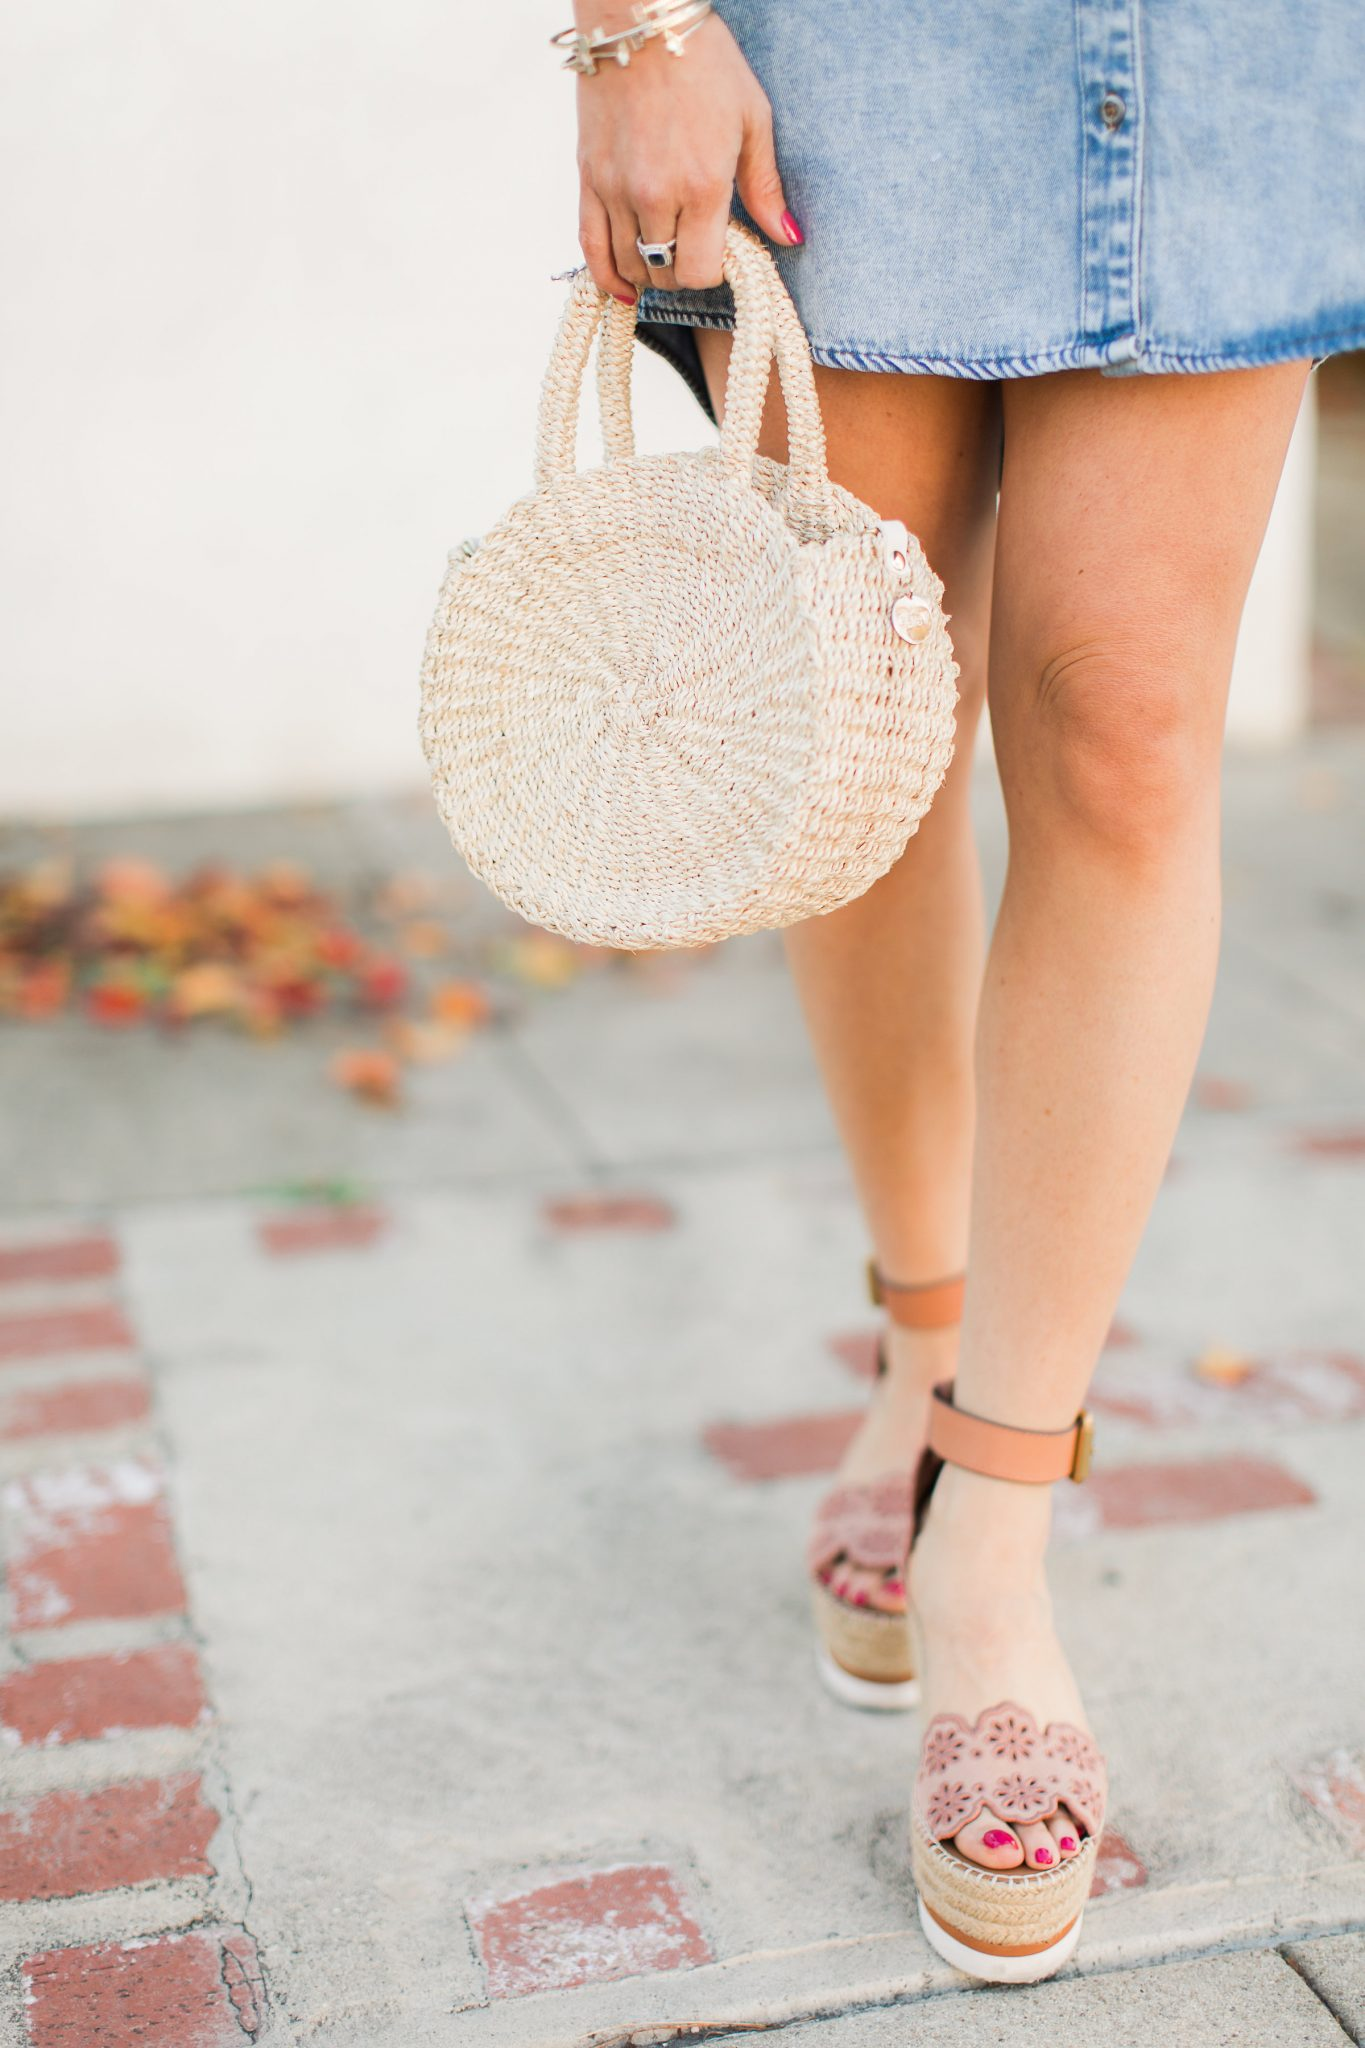 popular Orange County fashion blogger Maxie Elle